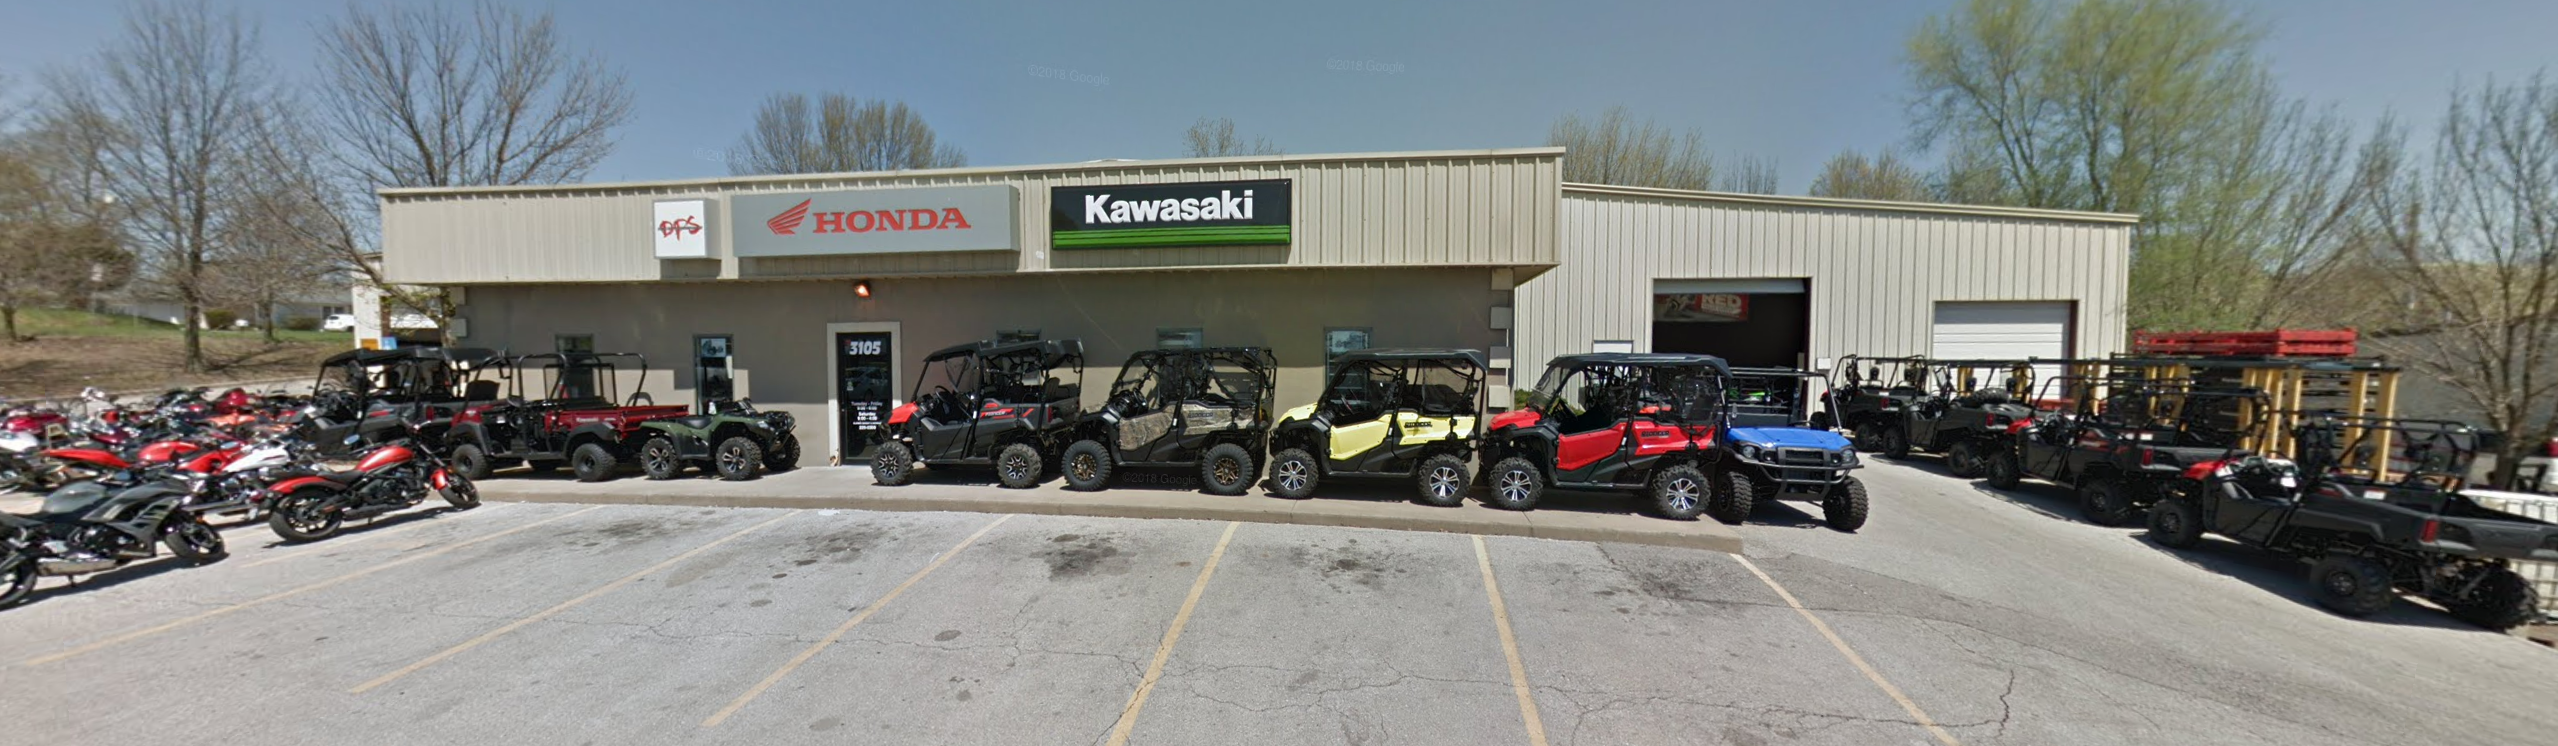 Honda Dealership Kansas City >> Kansas City Suburb Honda Kawasaki Dealership In Business